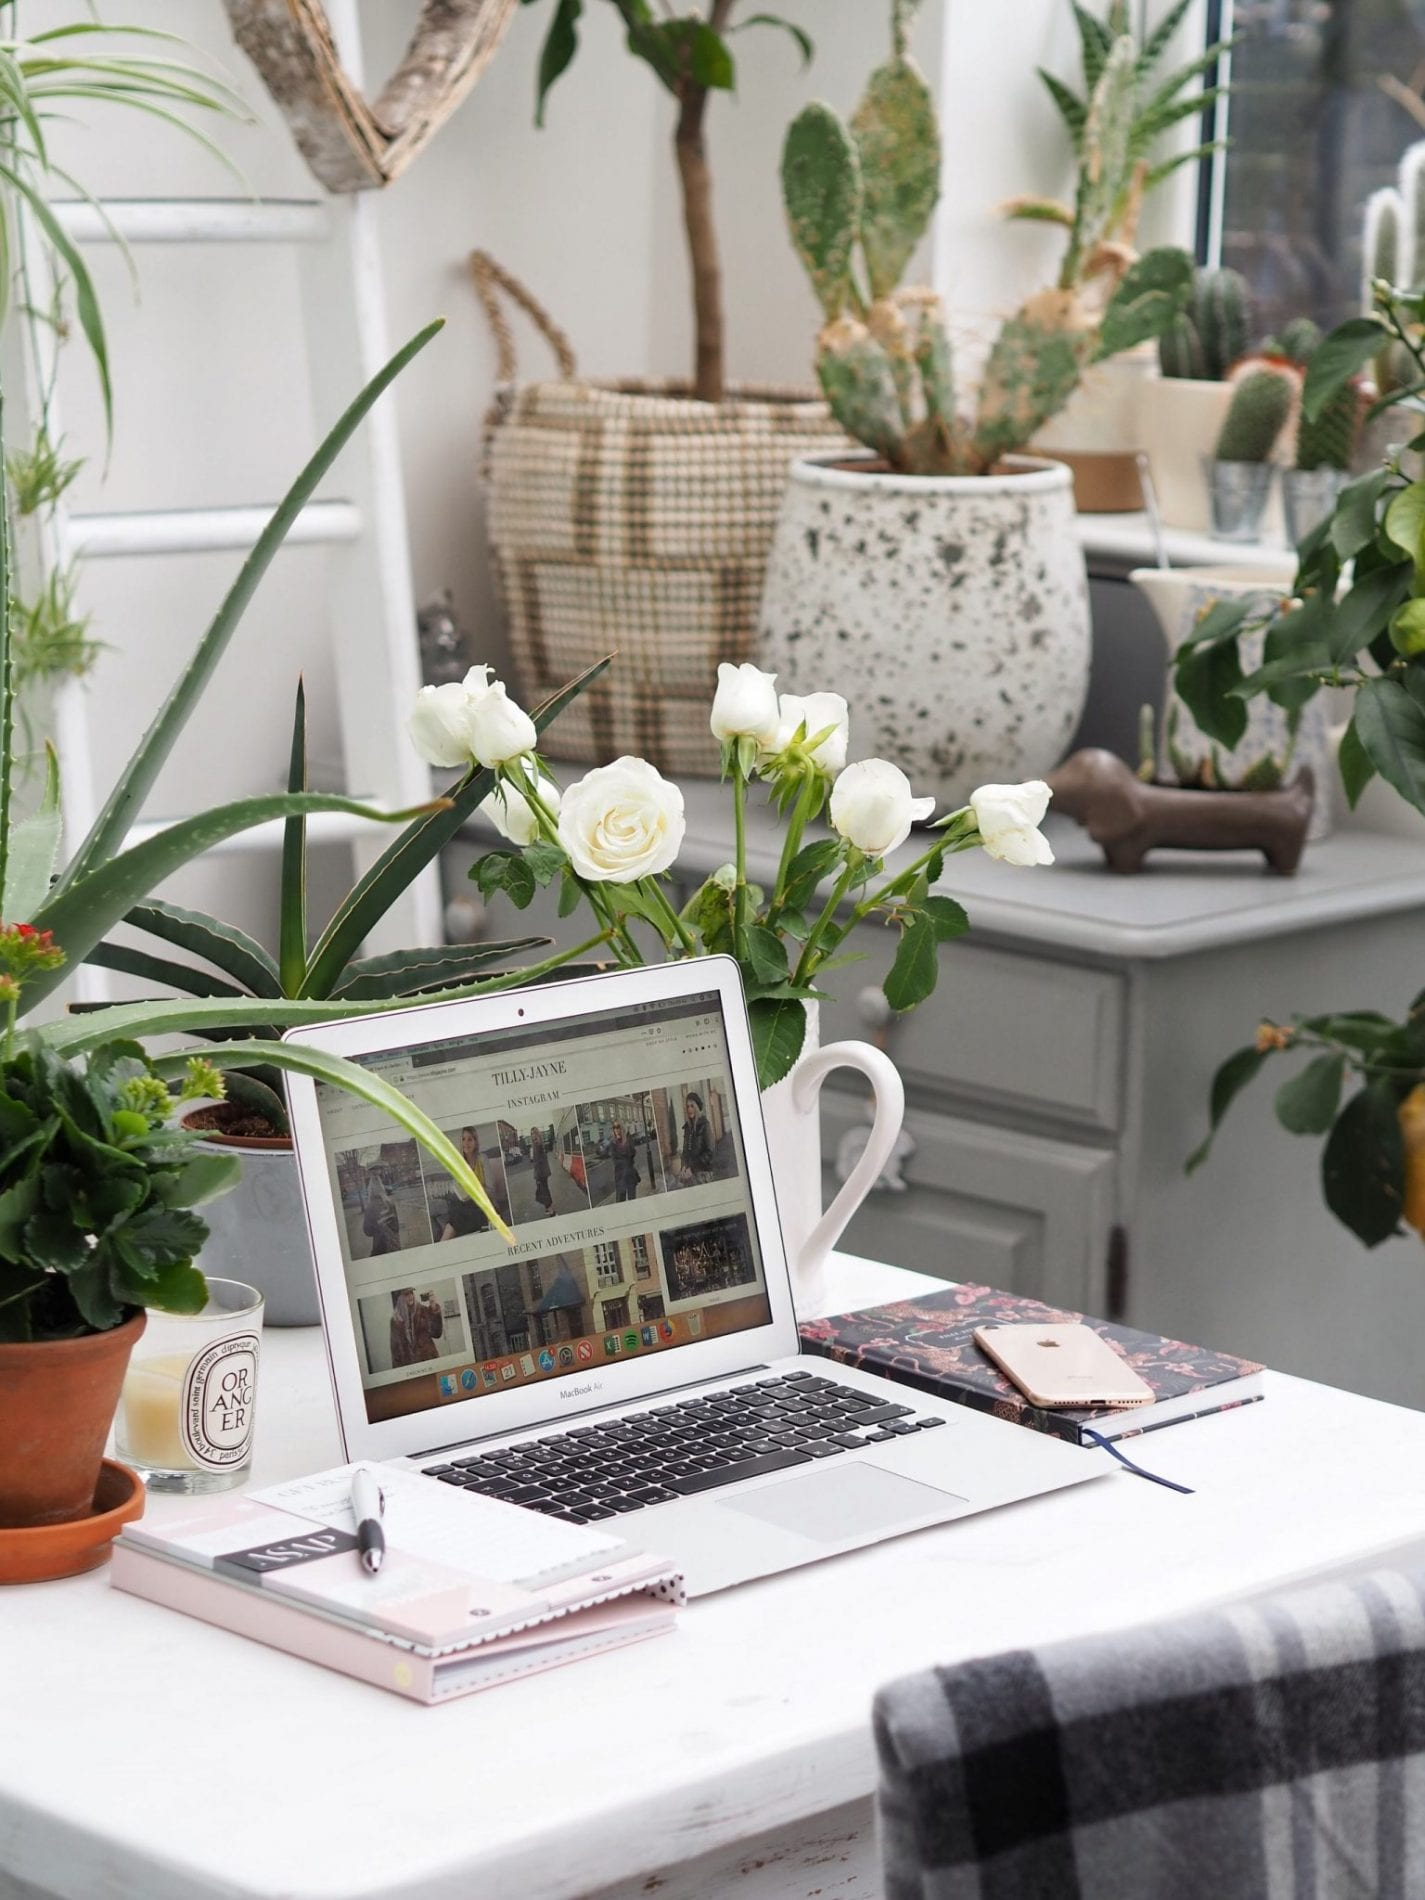 Inspiring home office tips - how to create a beautiful home office